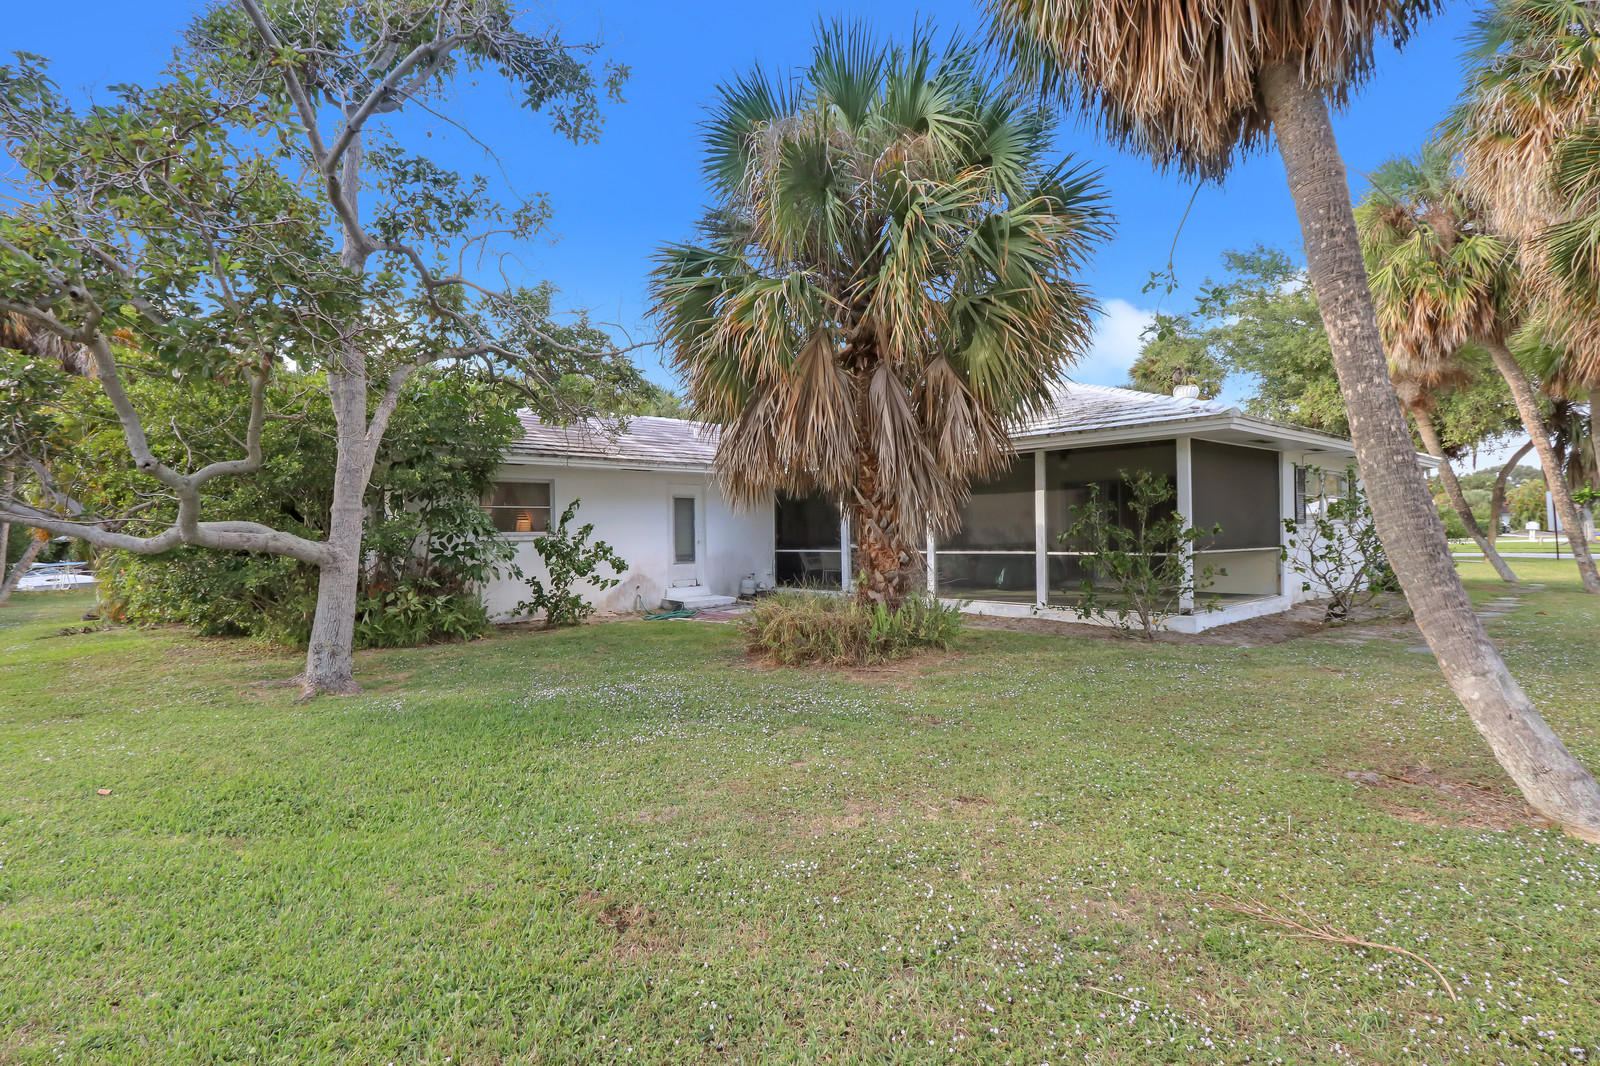 11721 Lake Shore Place, North Palm Beach, Florida 33408, 4 Bedrooms Bedrooms, ,3 BathroomsBathrooms,A,Single family,Lake Shore,RX-10481726